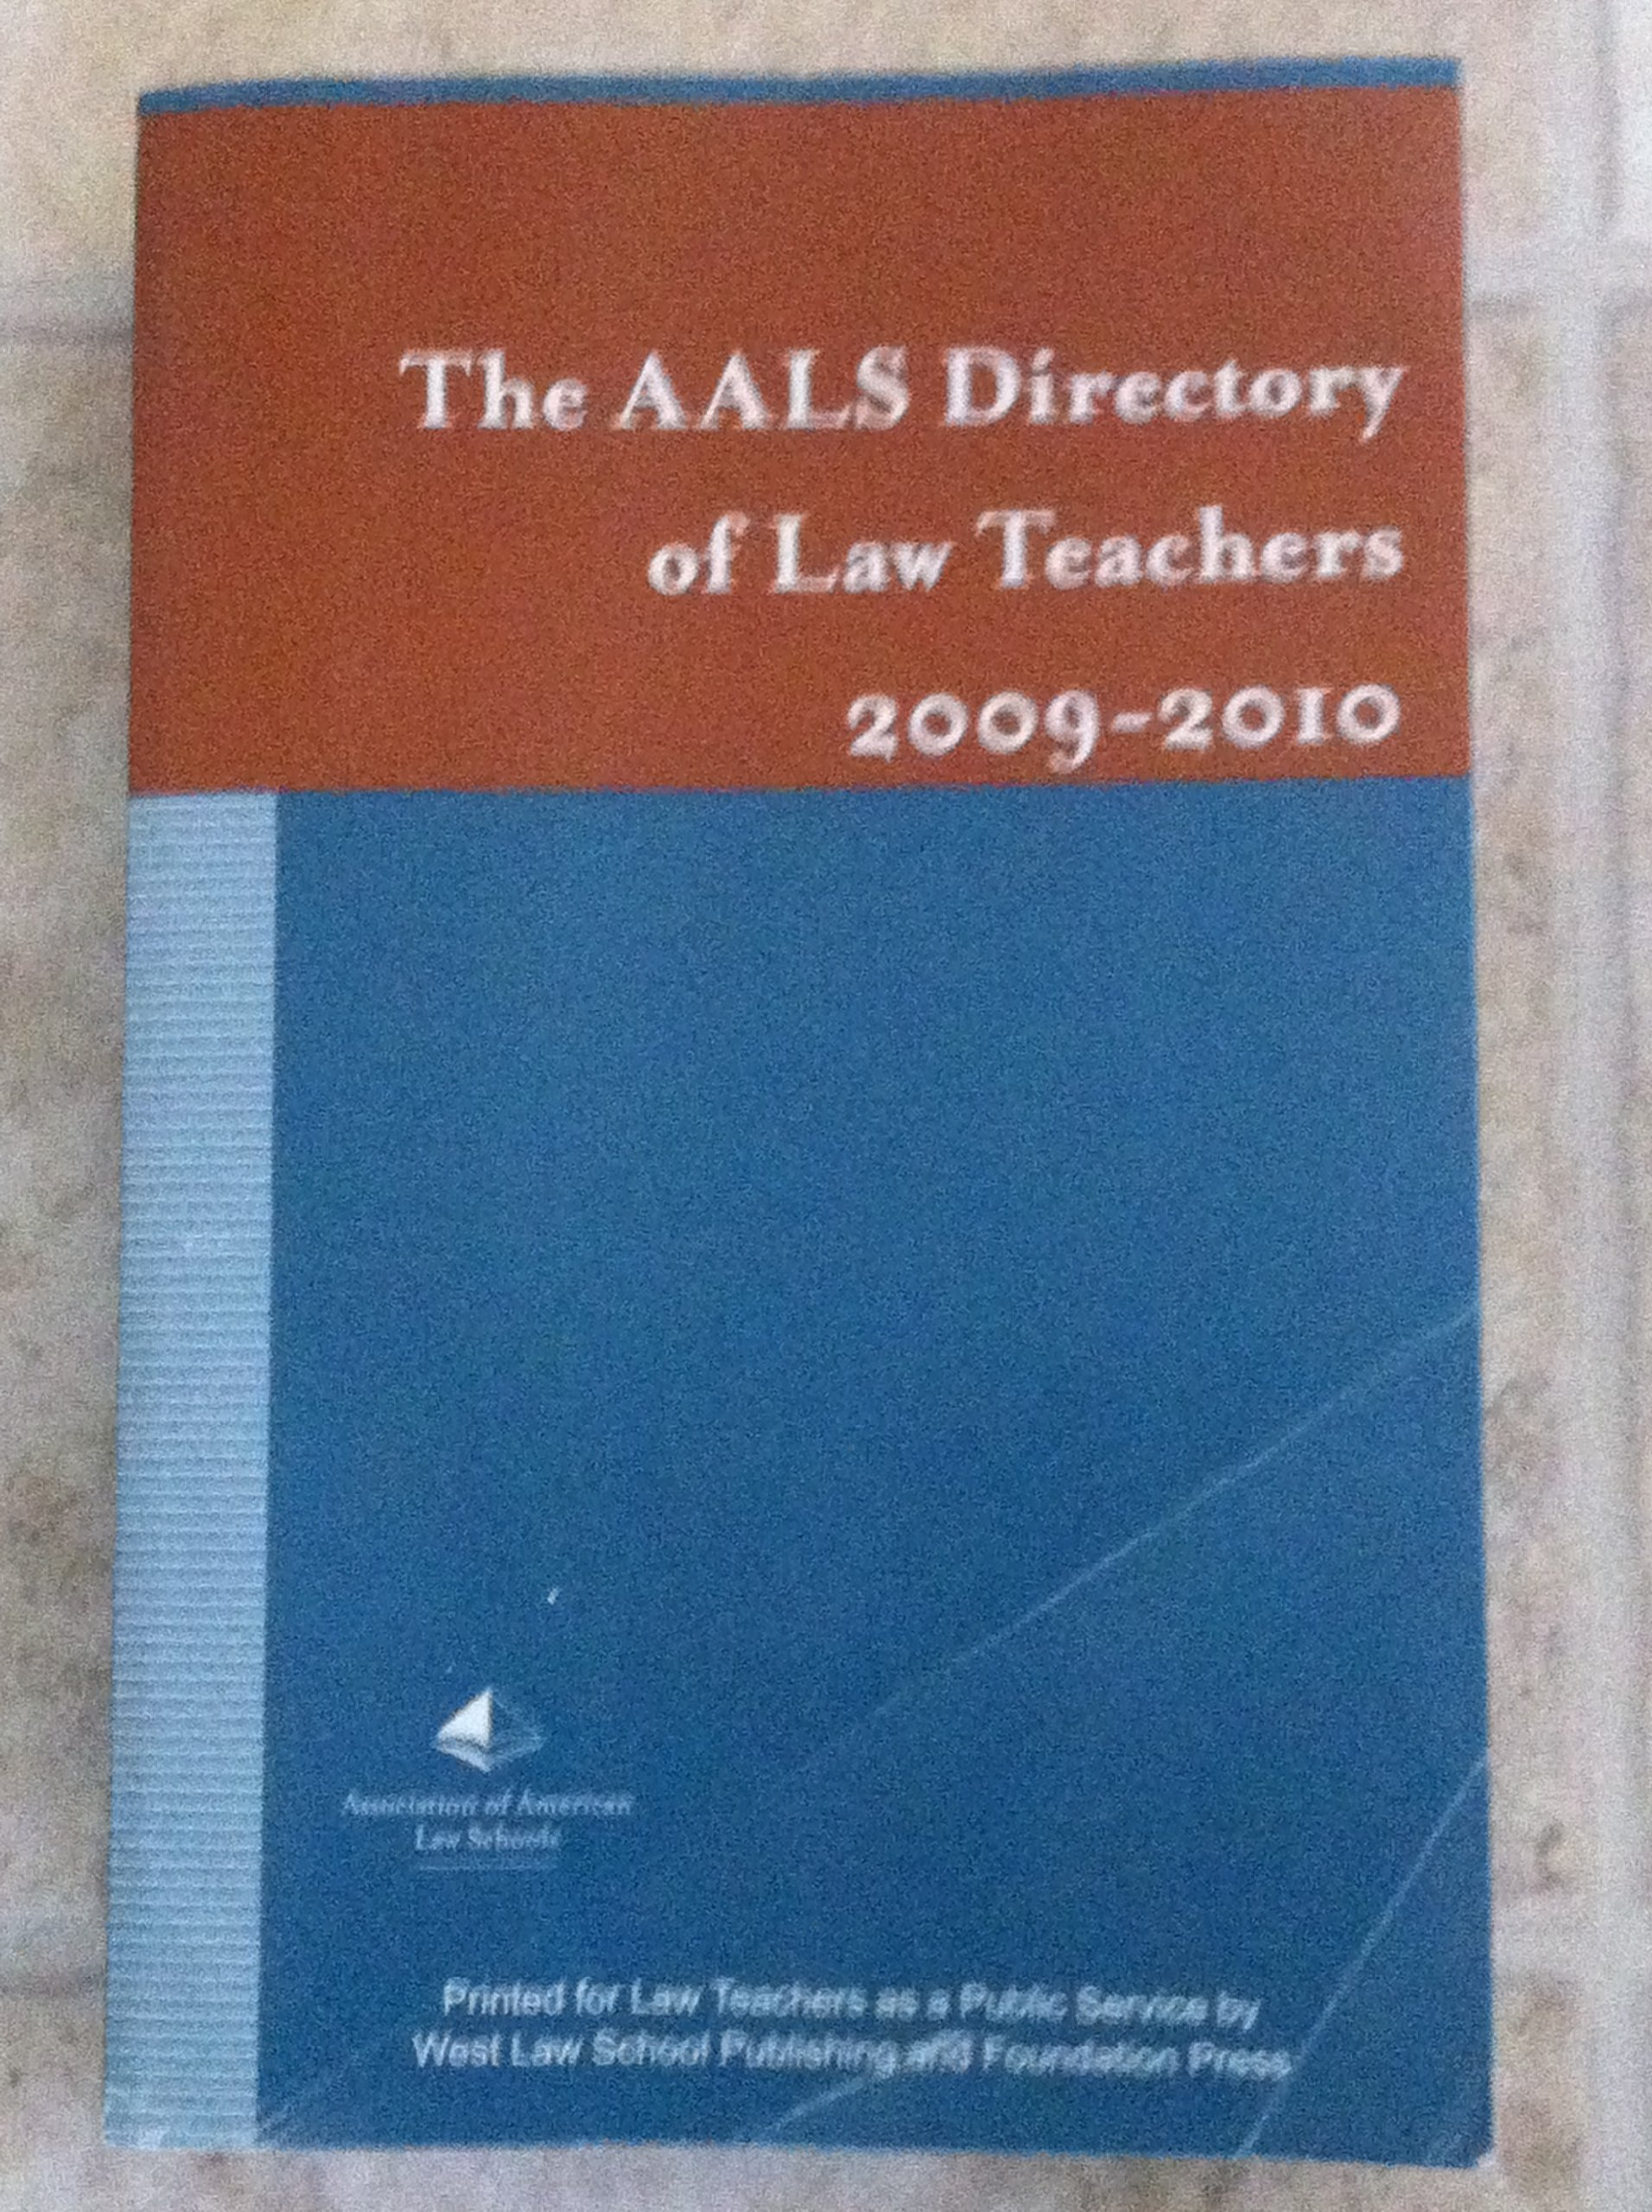 AALS Directory of Law Teachers 2009-2010: West Thomson